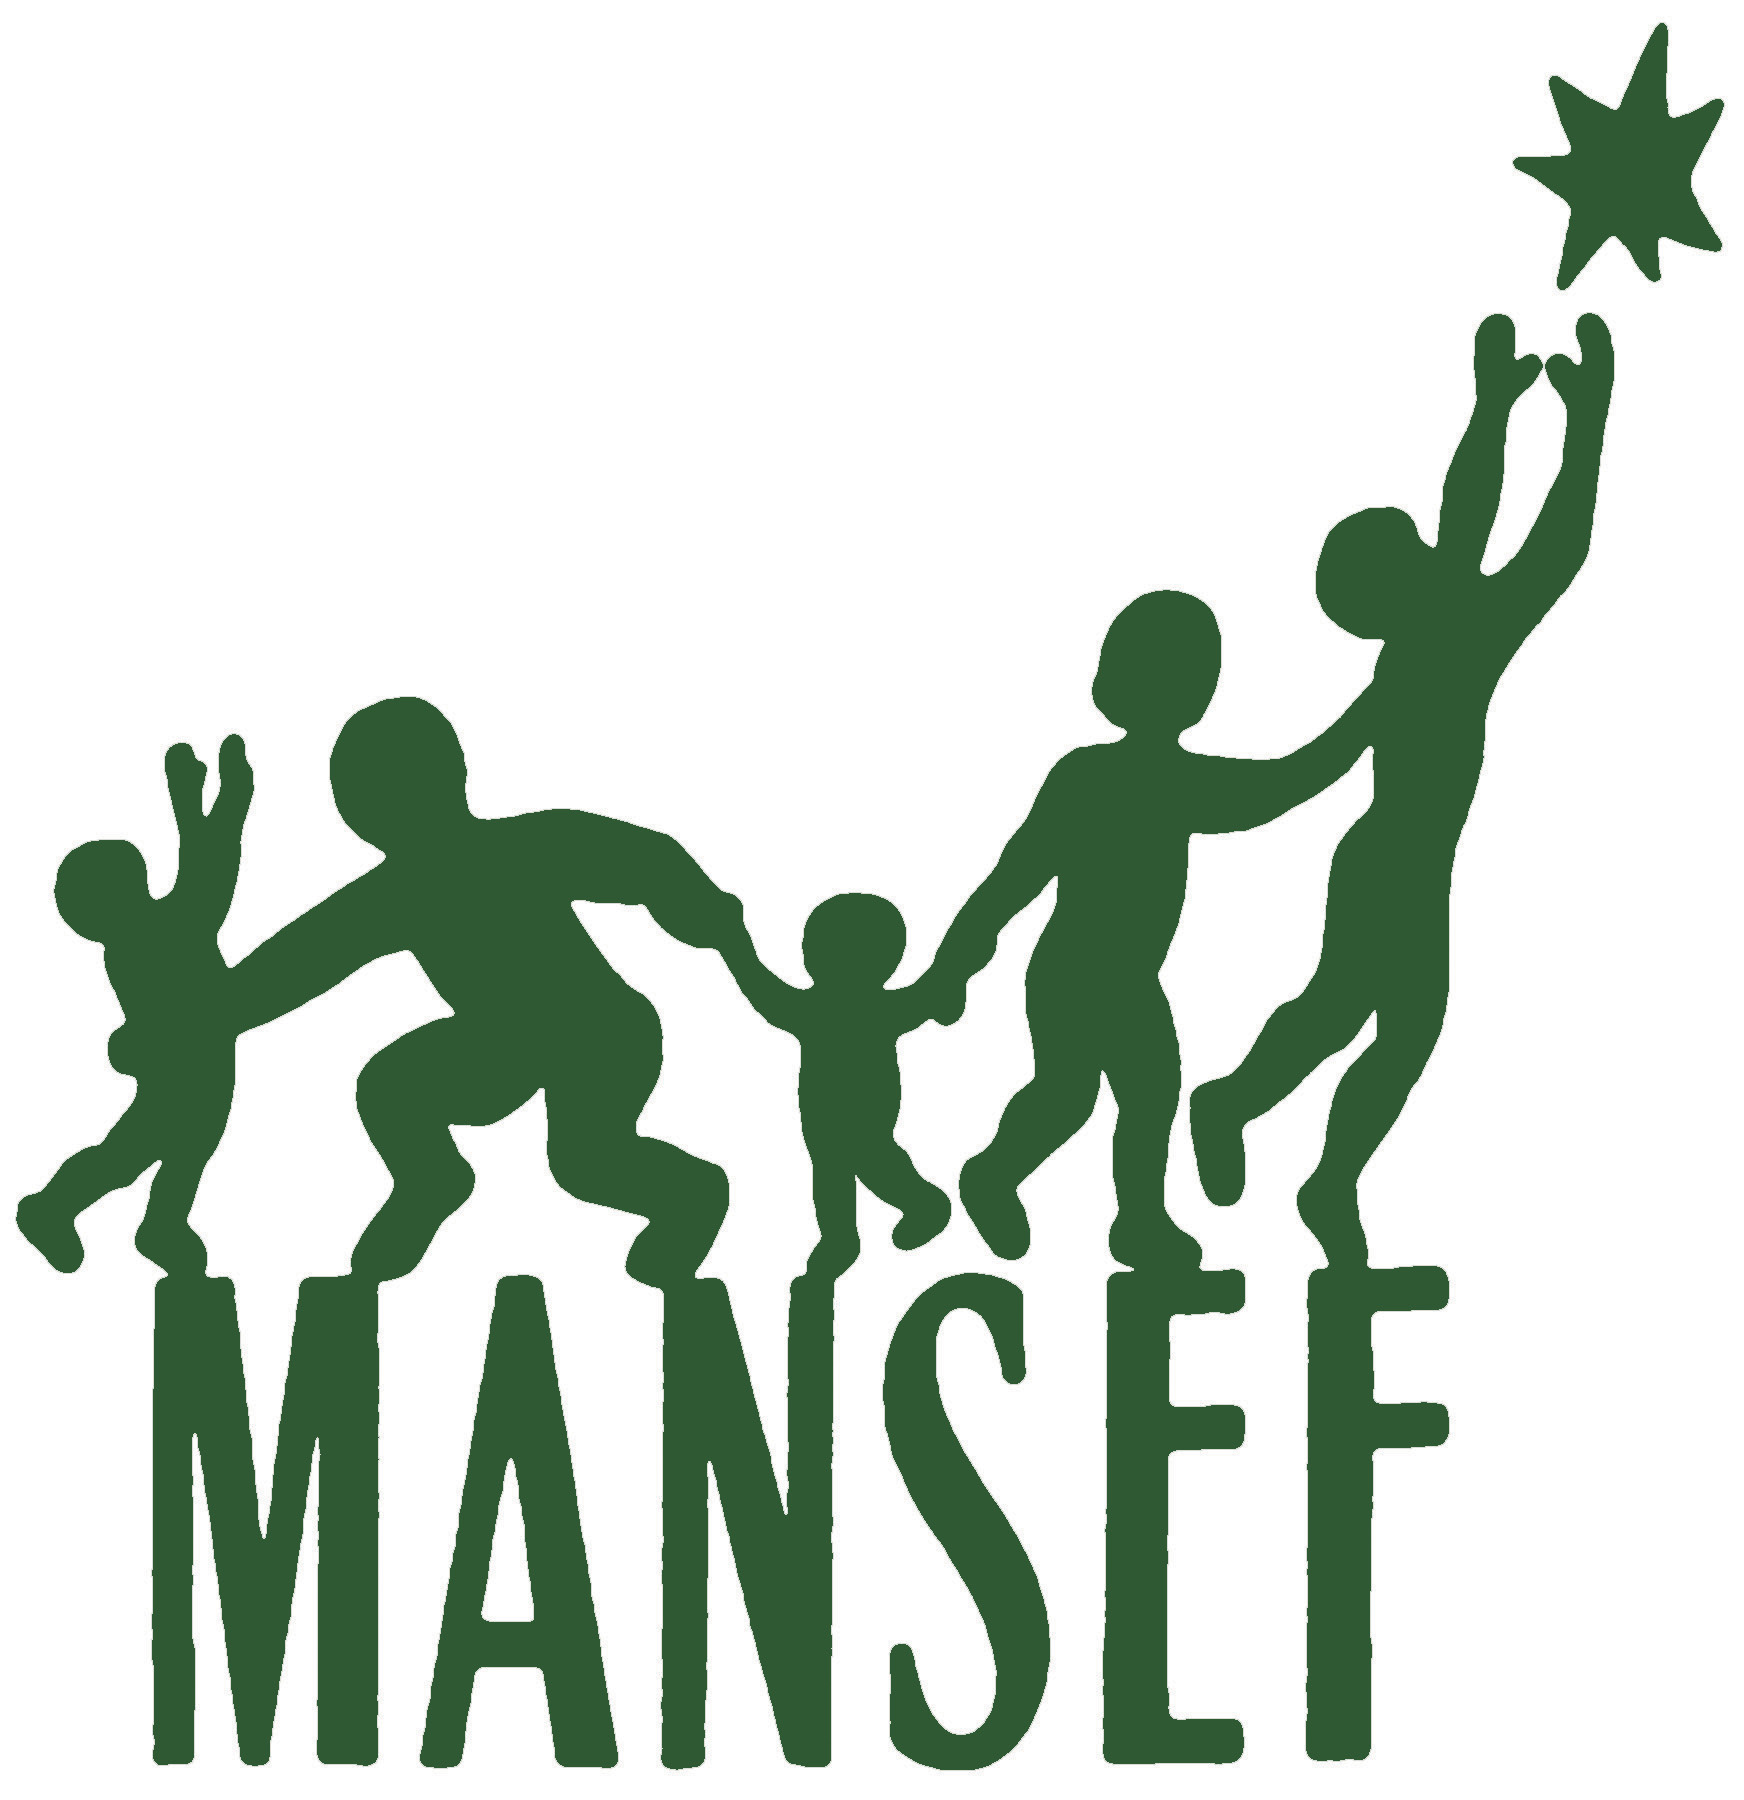 manlogo-green - Copy